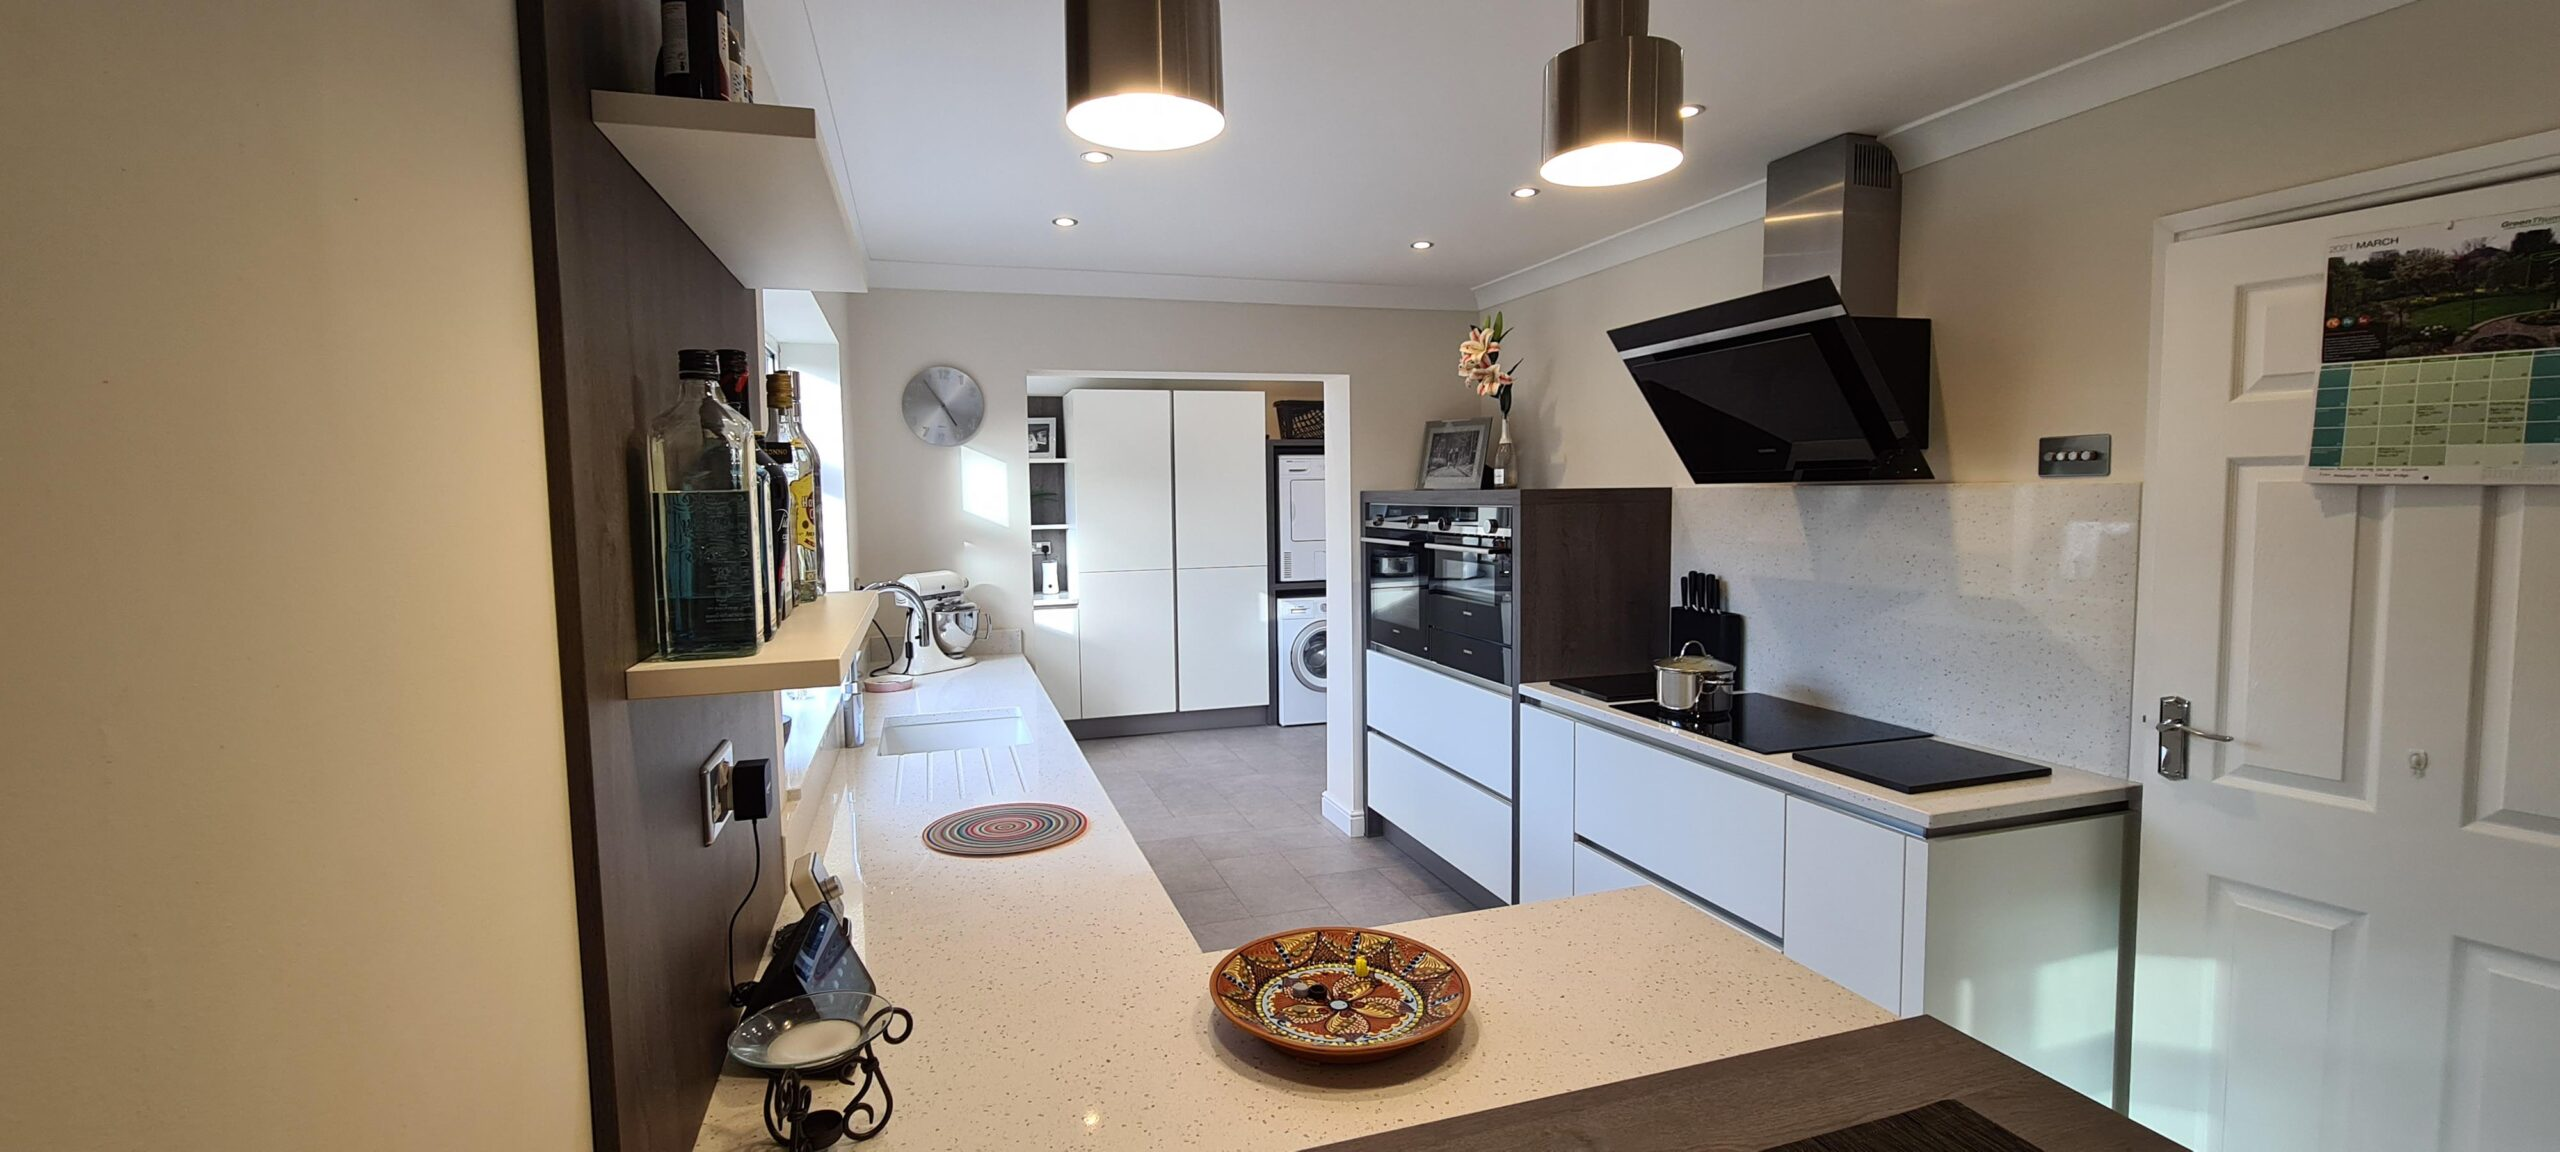 An image of a kitchen with a L shaped white marble counter